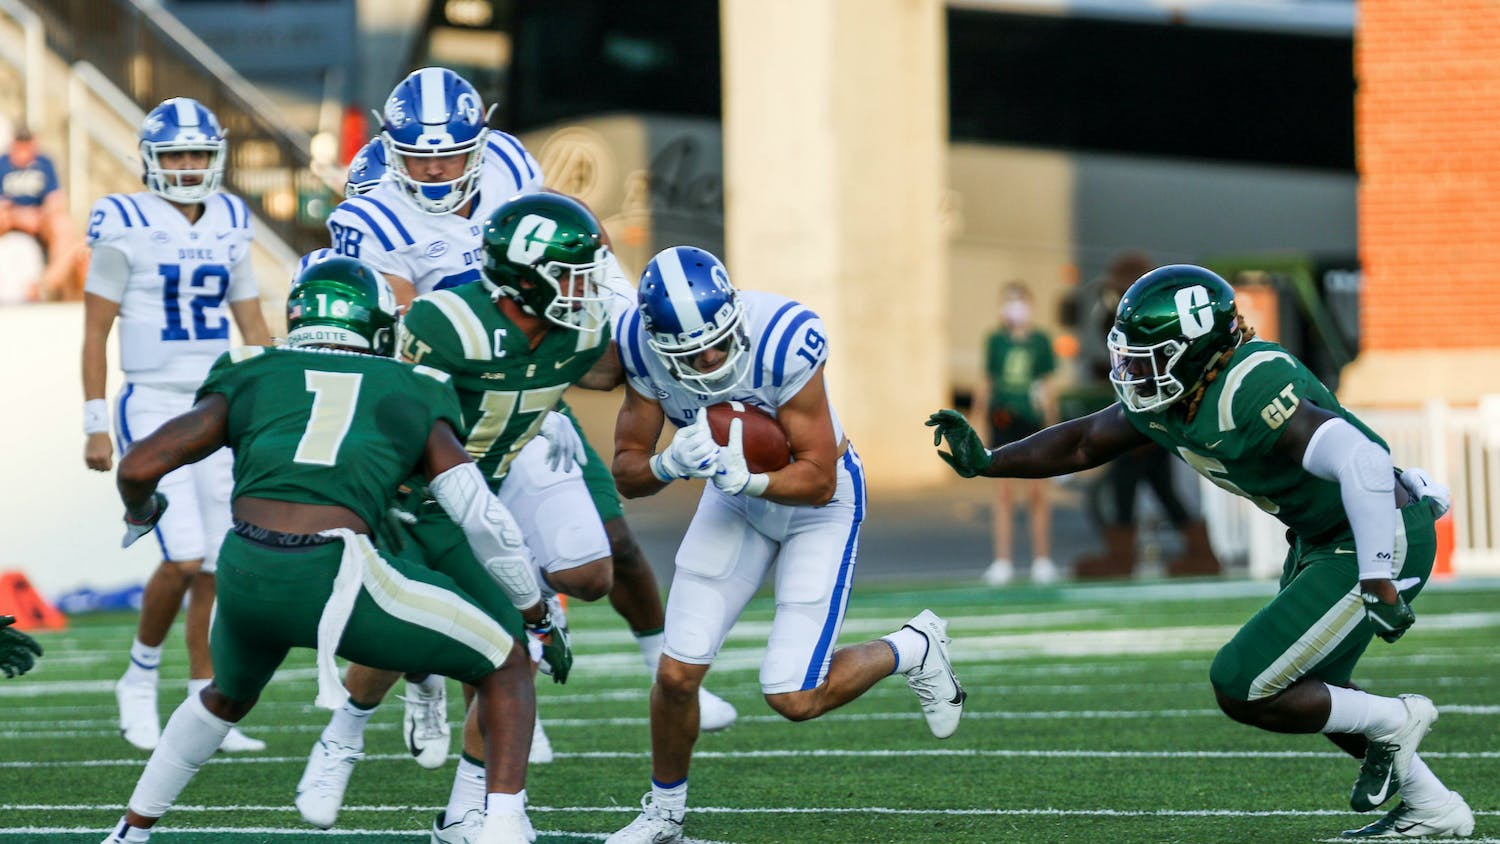 Senior wide receiver Jake Bobo leads the Blue Devils with 93.3 receiving yards per game.